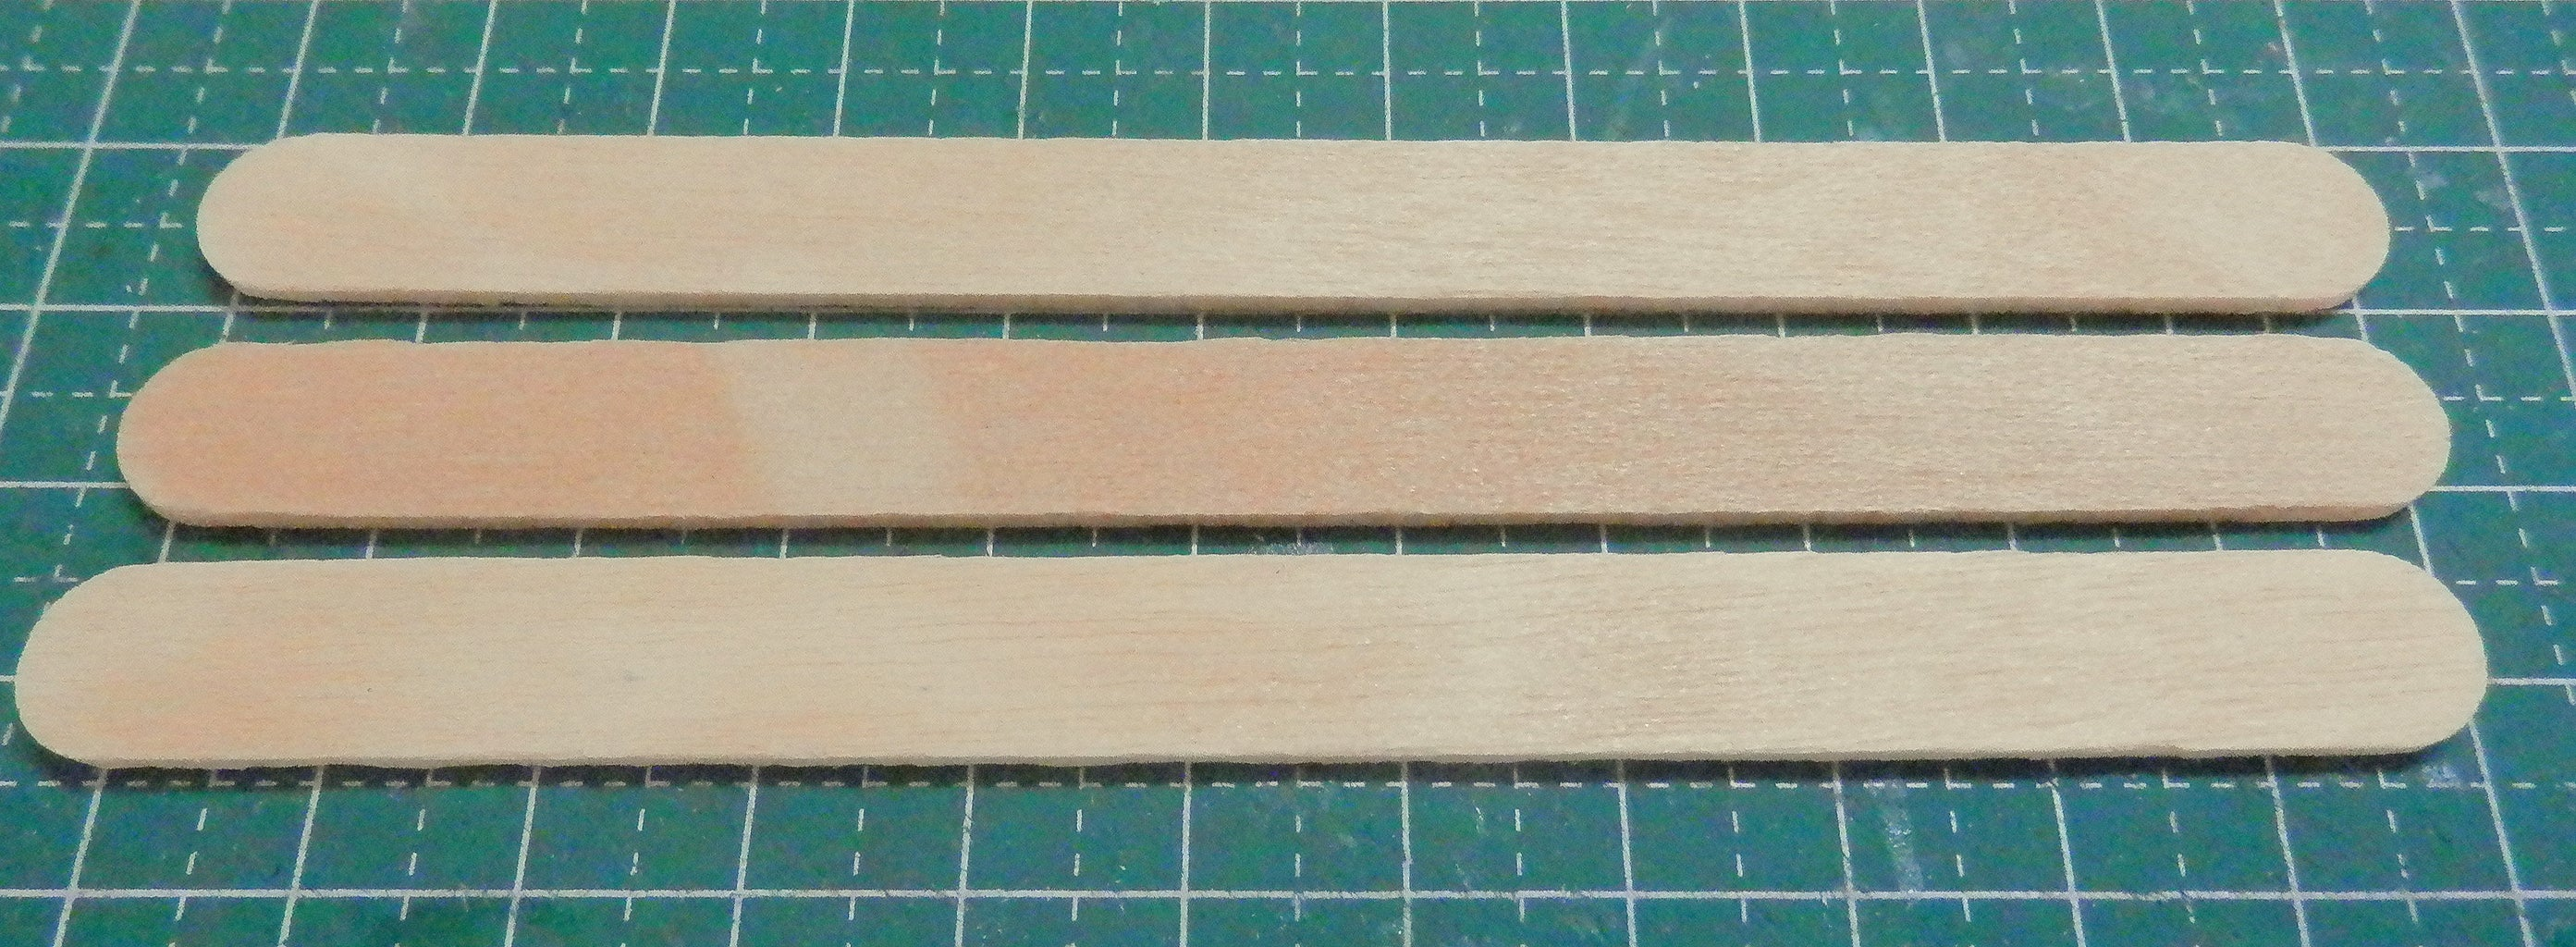 Primary Airfoil